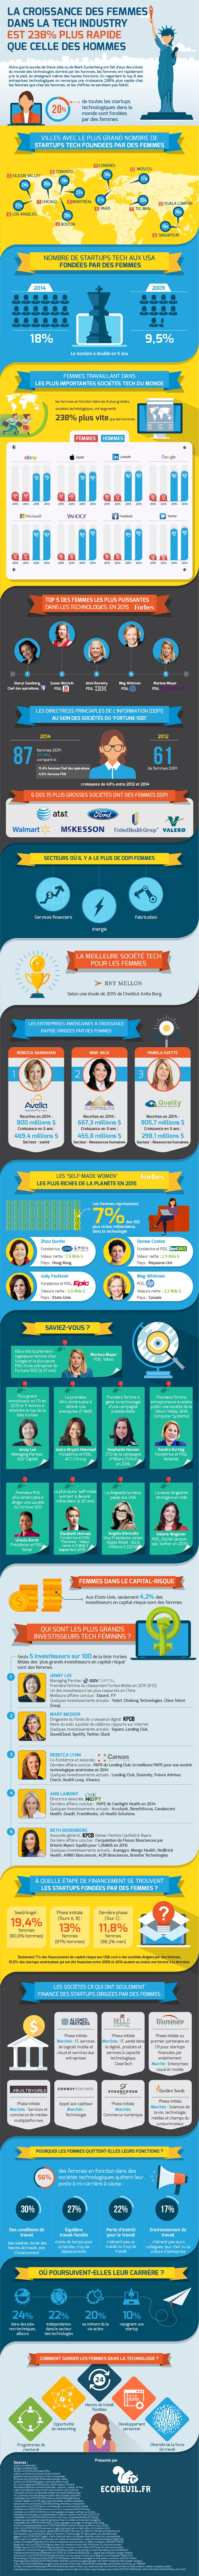 Women In Tech Infographie2